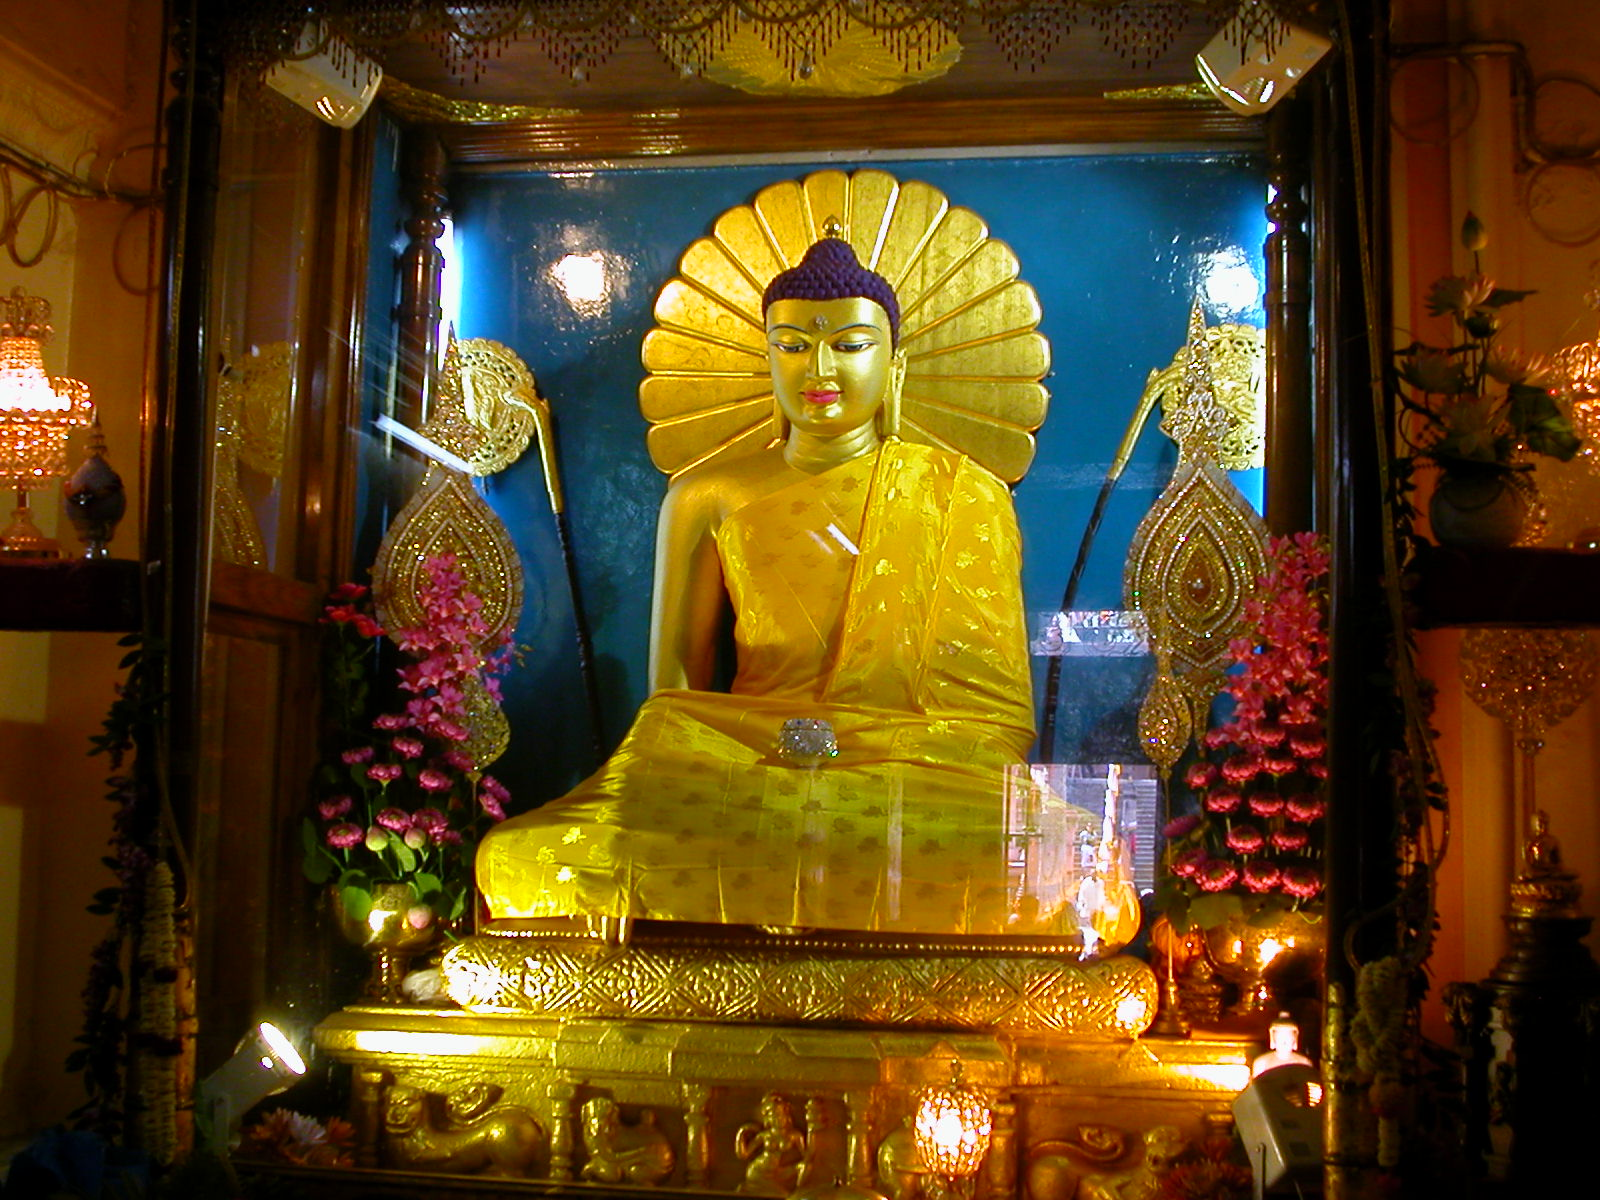 Lord Buddha 3d Live Wallpaper The Great Awakening At Mahabodhi Temple India Heritage Sites